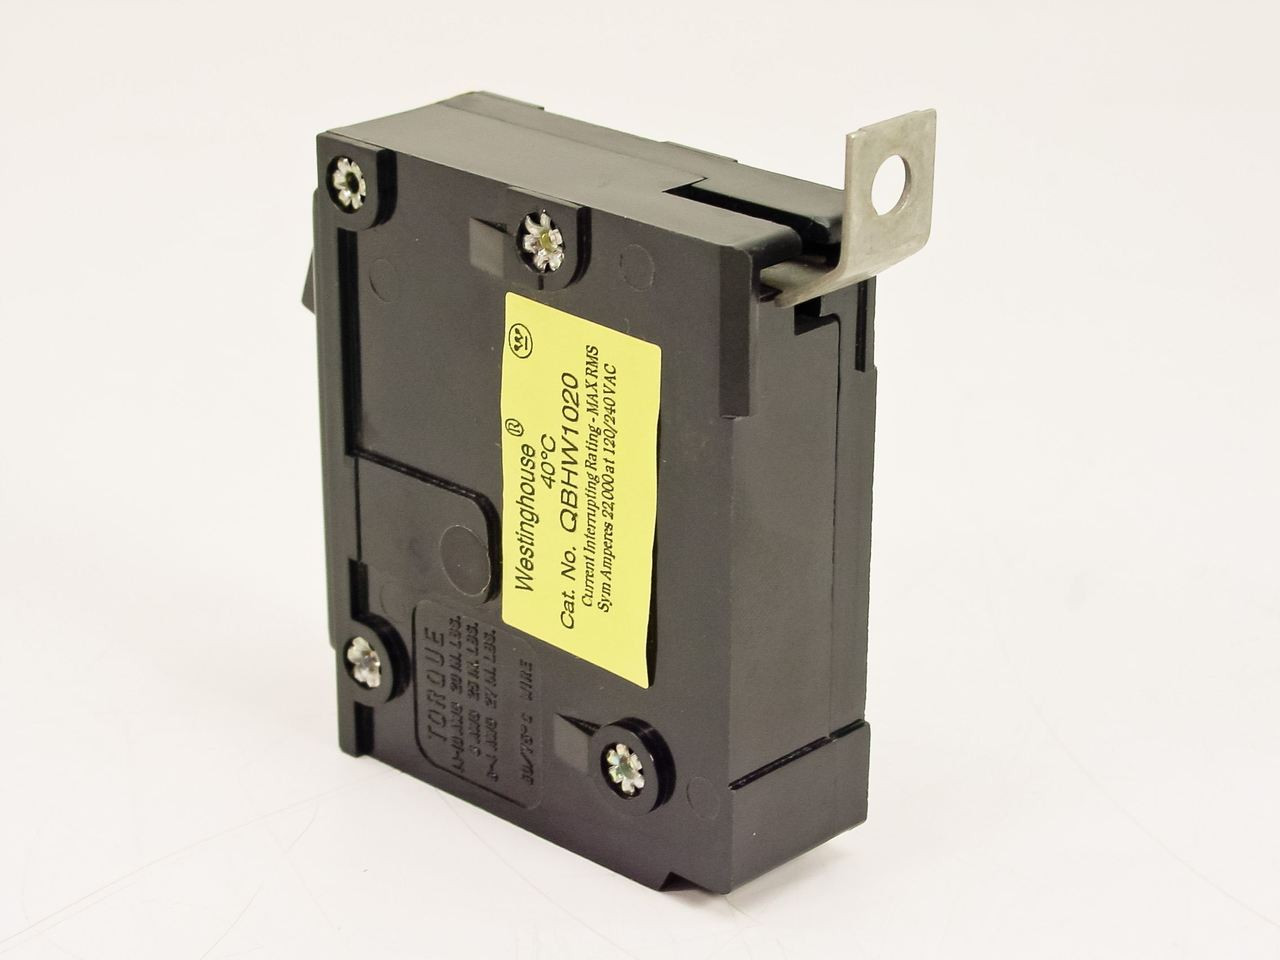 hight resolution of westinghouse 20amp circuit breaker qbhw1020 westinghouse 20amp circuit breaker qbhw1020